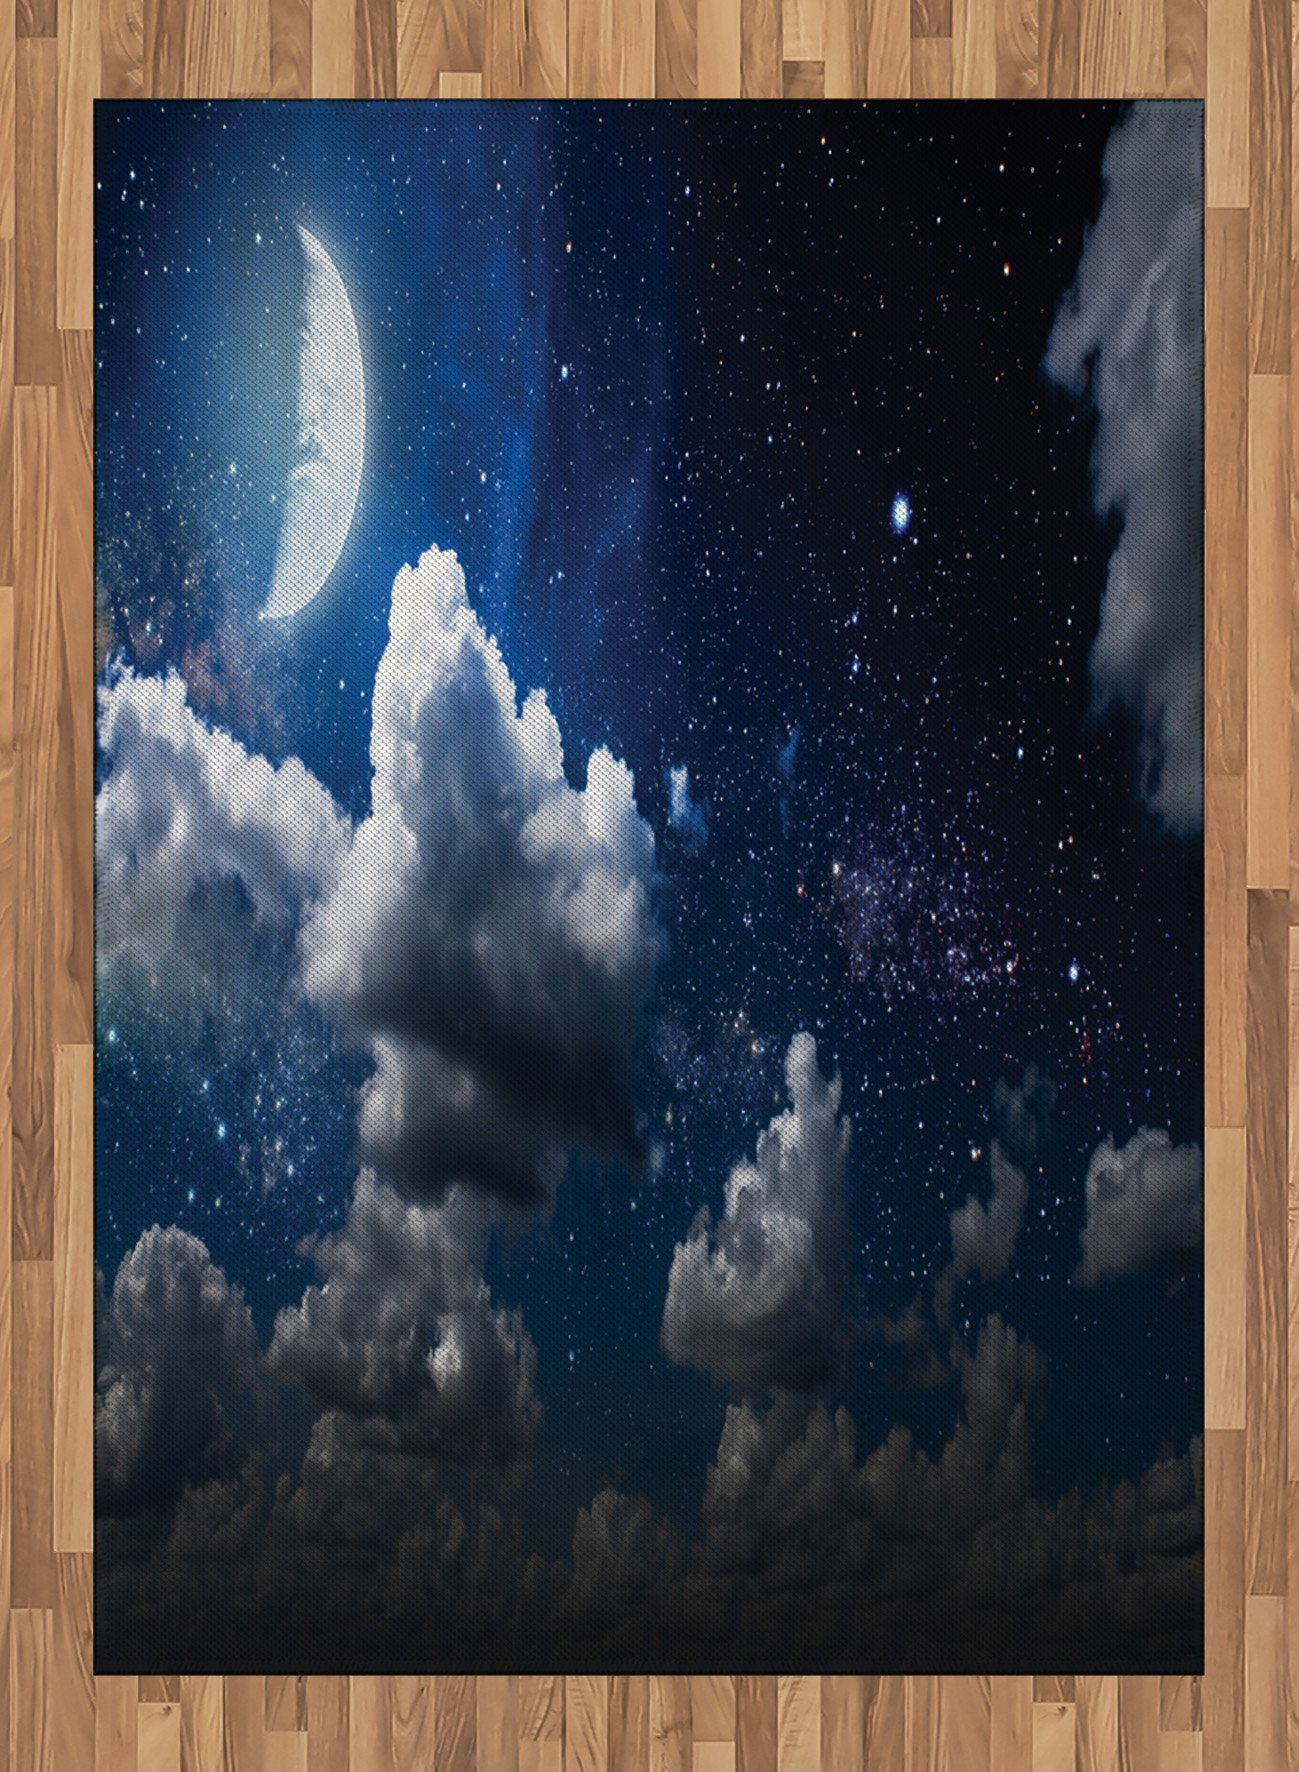 Clouds Area Rug by Ambesonne, Celestial Solar Night Scene Stars Moon and Clouds Heaven Place in Cosmos Theme, Flat Woven Accent Rug for Living Room Bedroom Dining Room, 5.2 x 7.5 FT, Dark Blue White